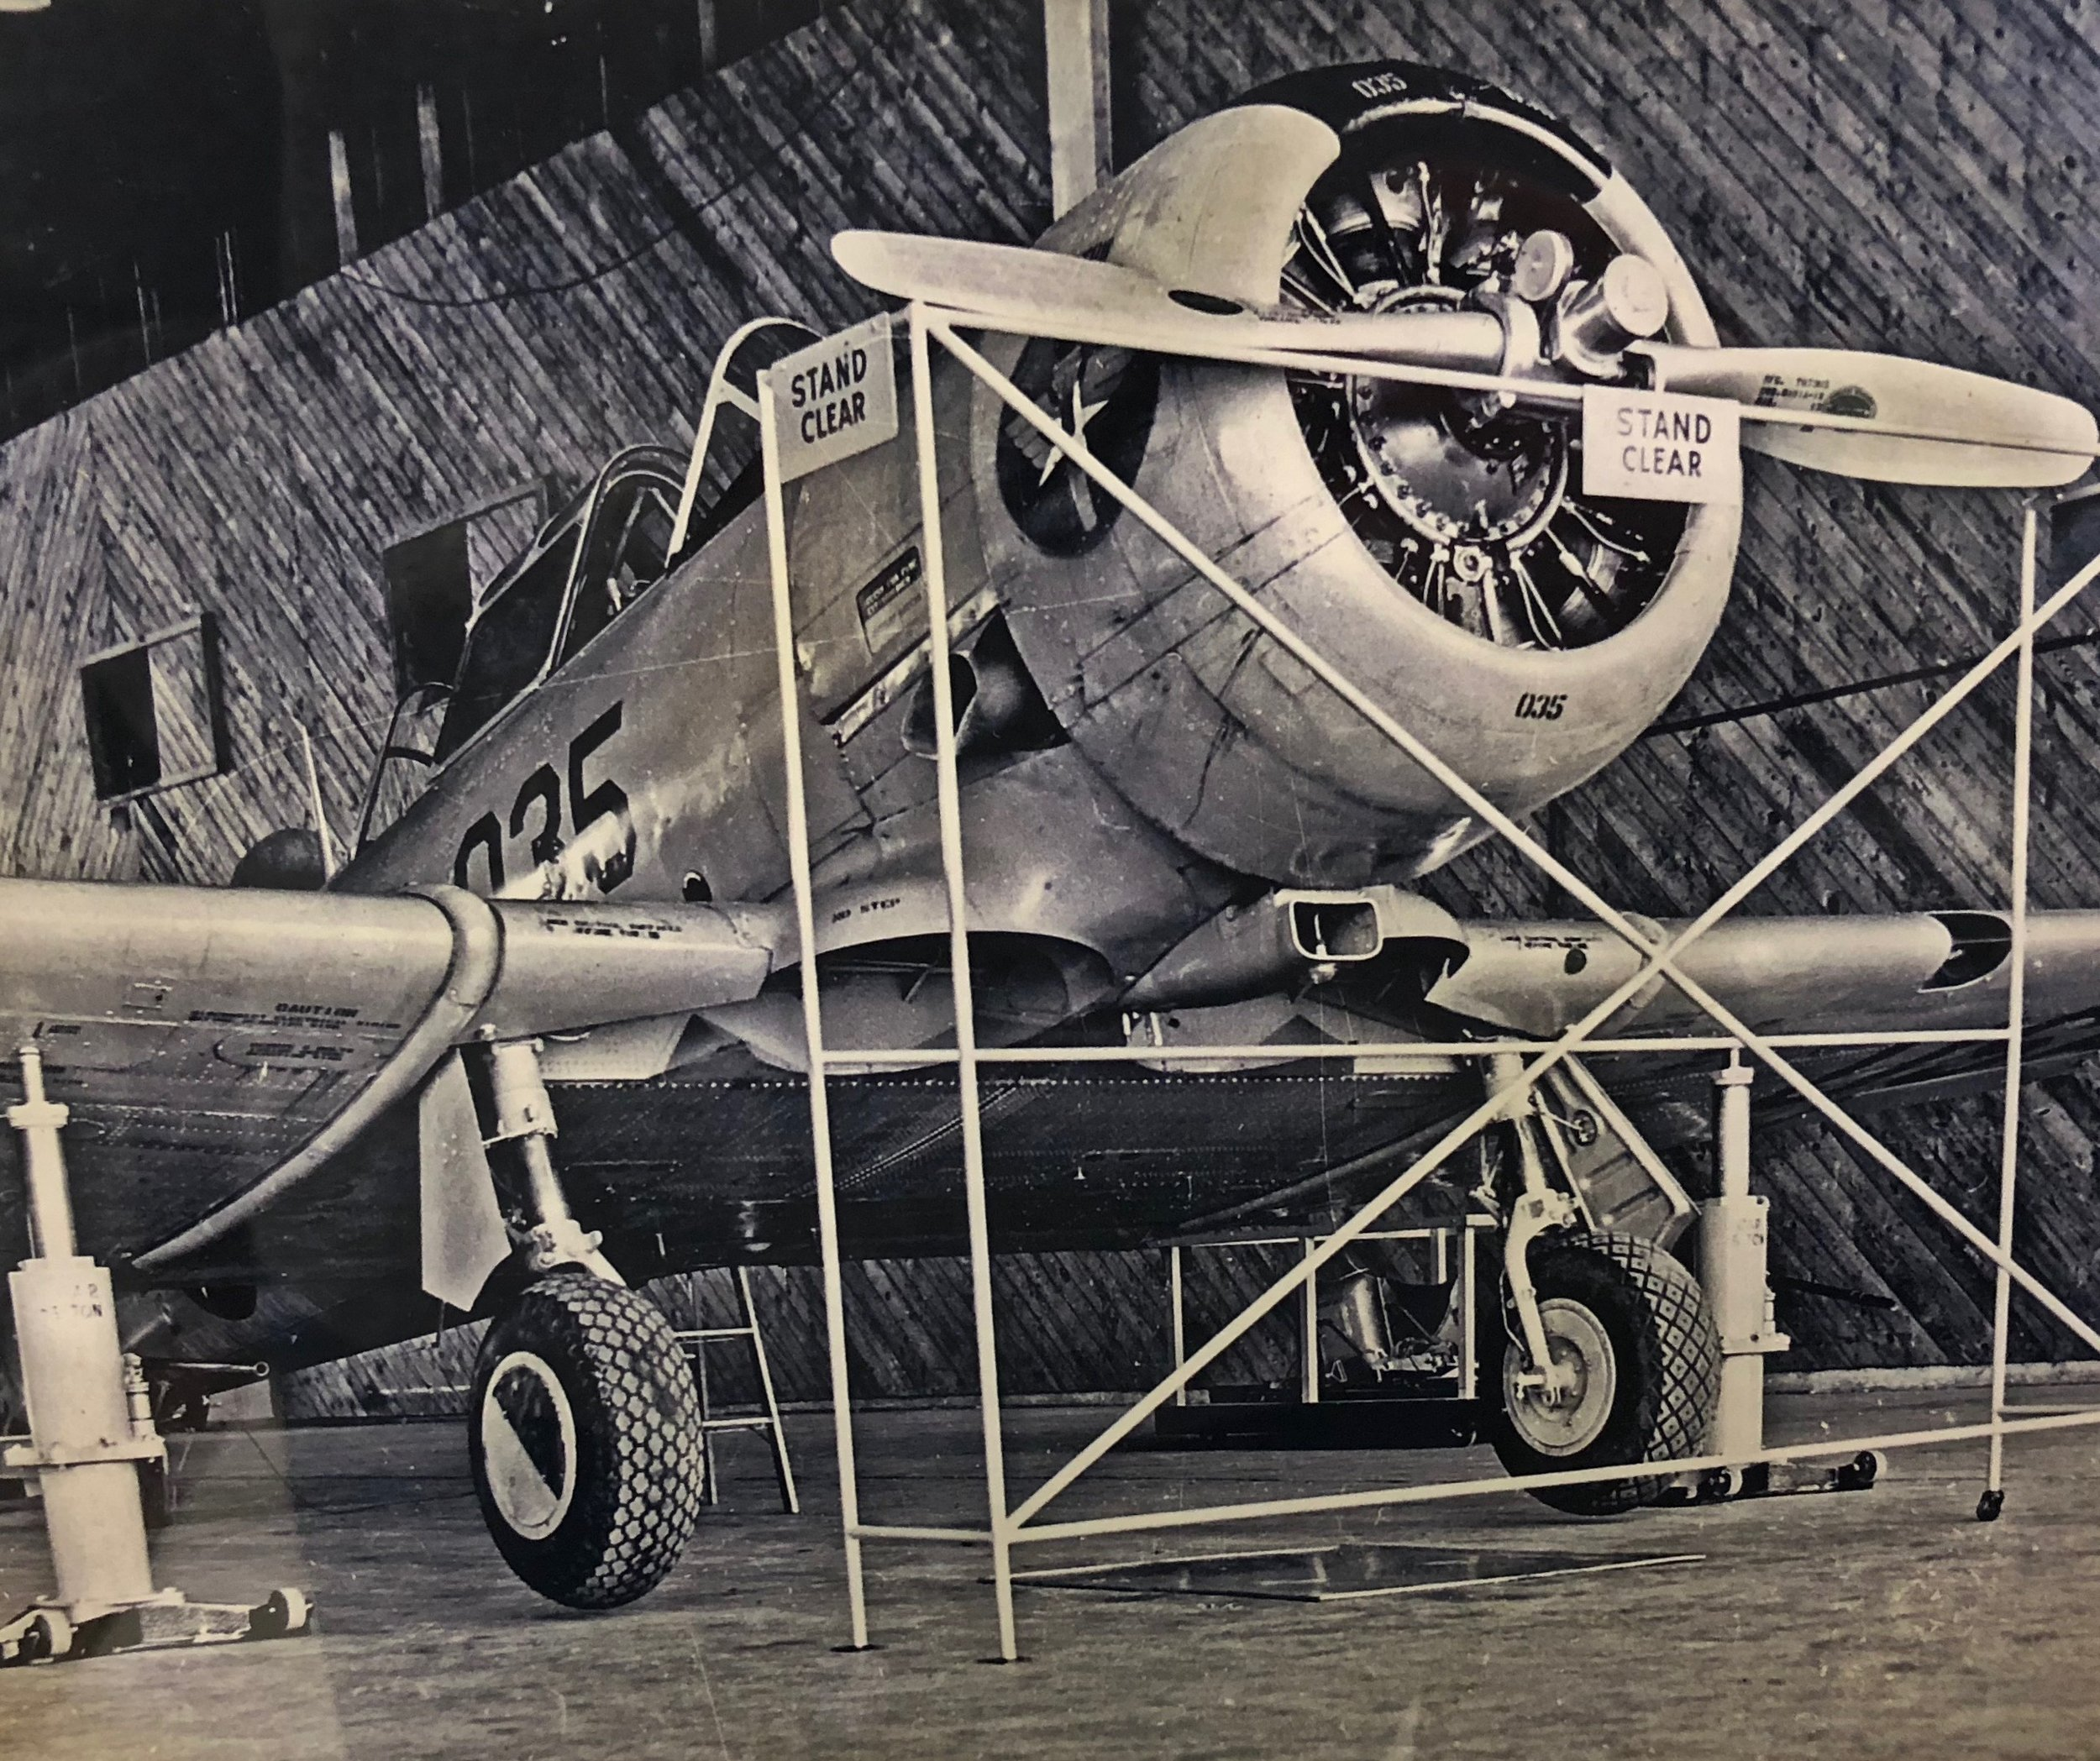 T-6 on Jacks in Maintenance Shop